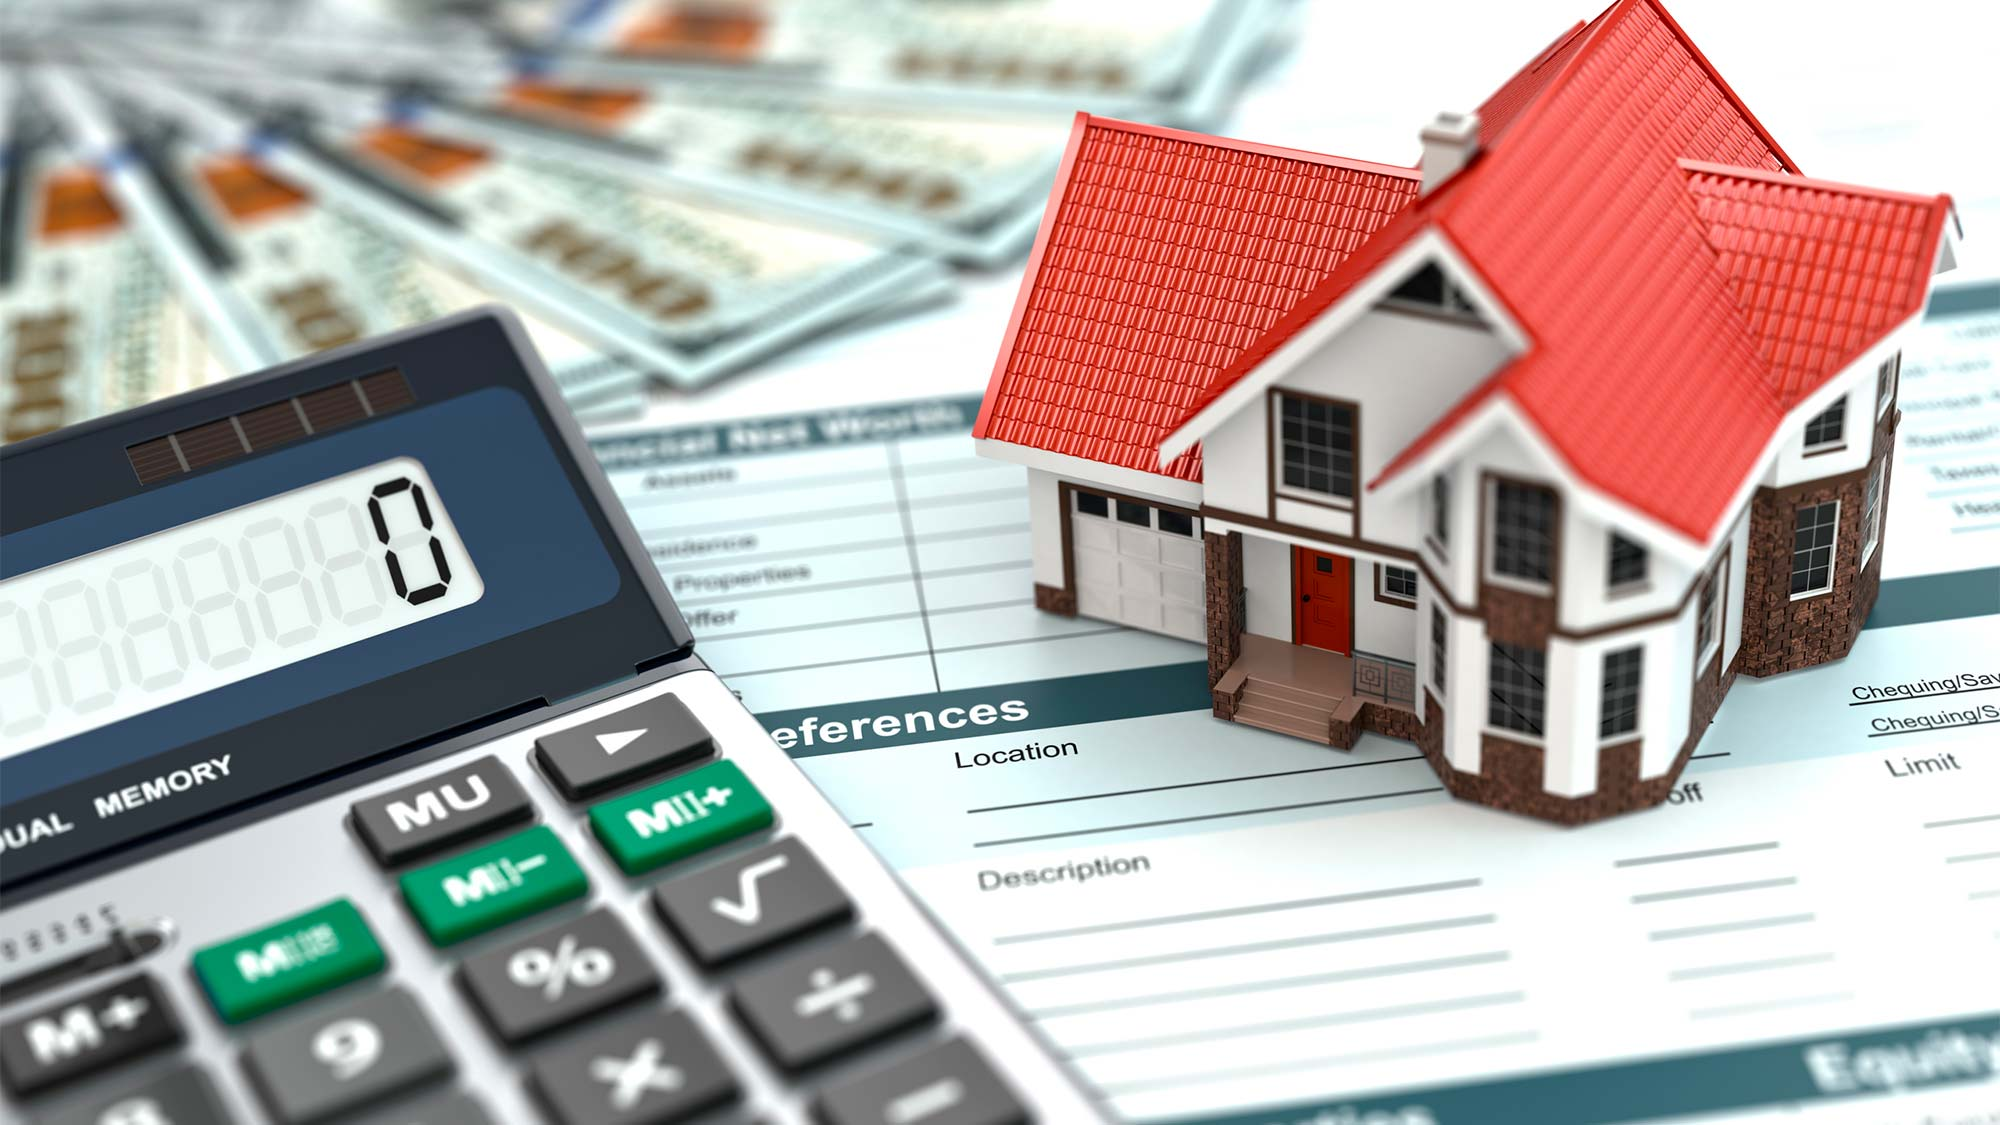 How much does it cost to build a house can you guess for Free cost of building a house calculator